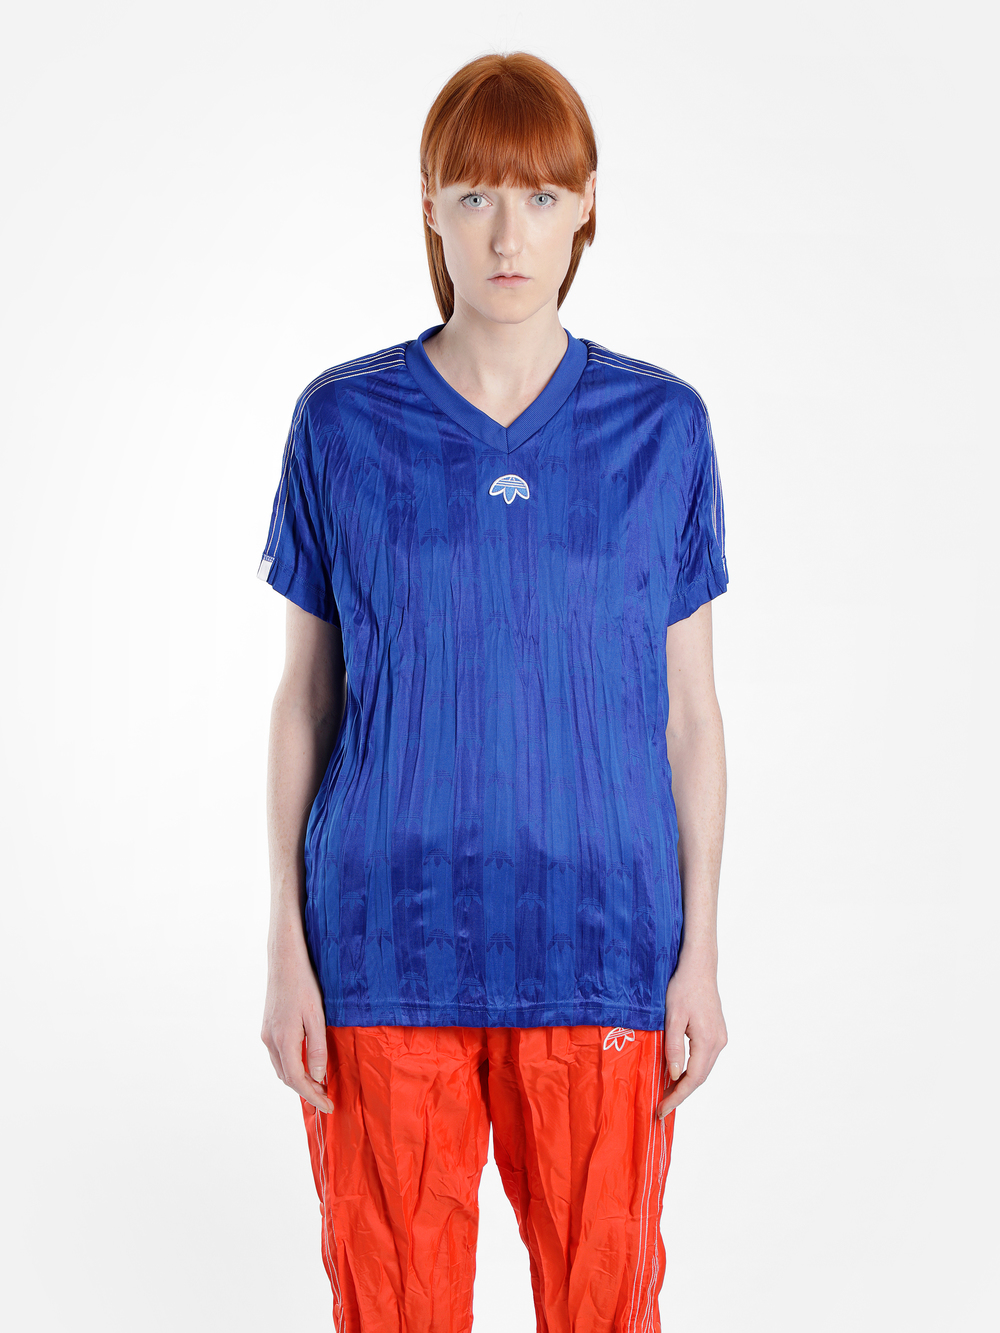 Adidas Originals By Alexander Wang Adidas By Alexander Wang T-Shirts In Blue